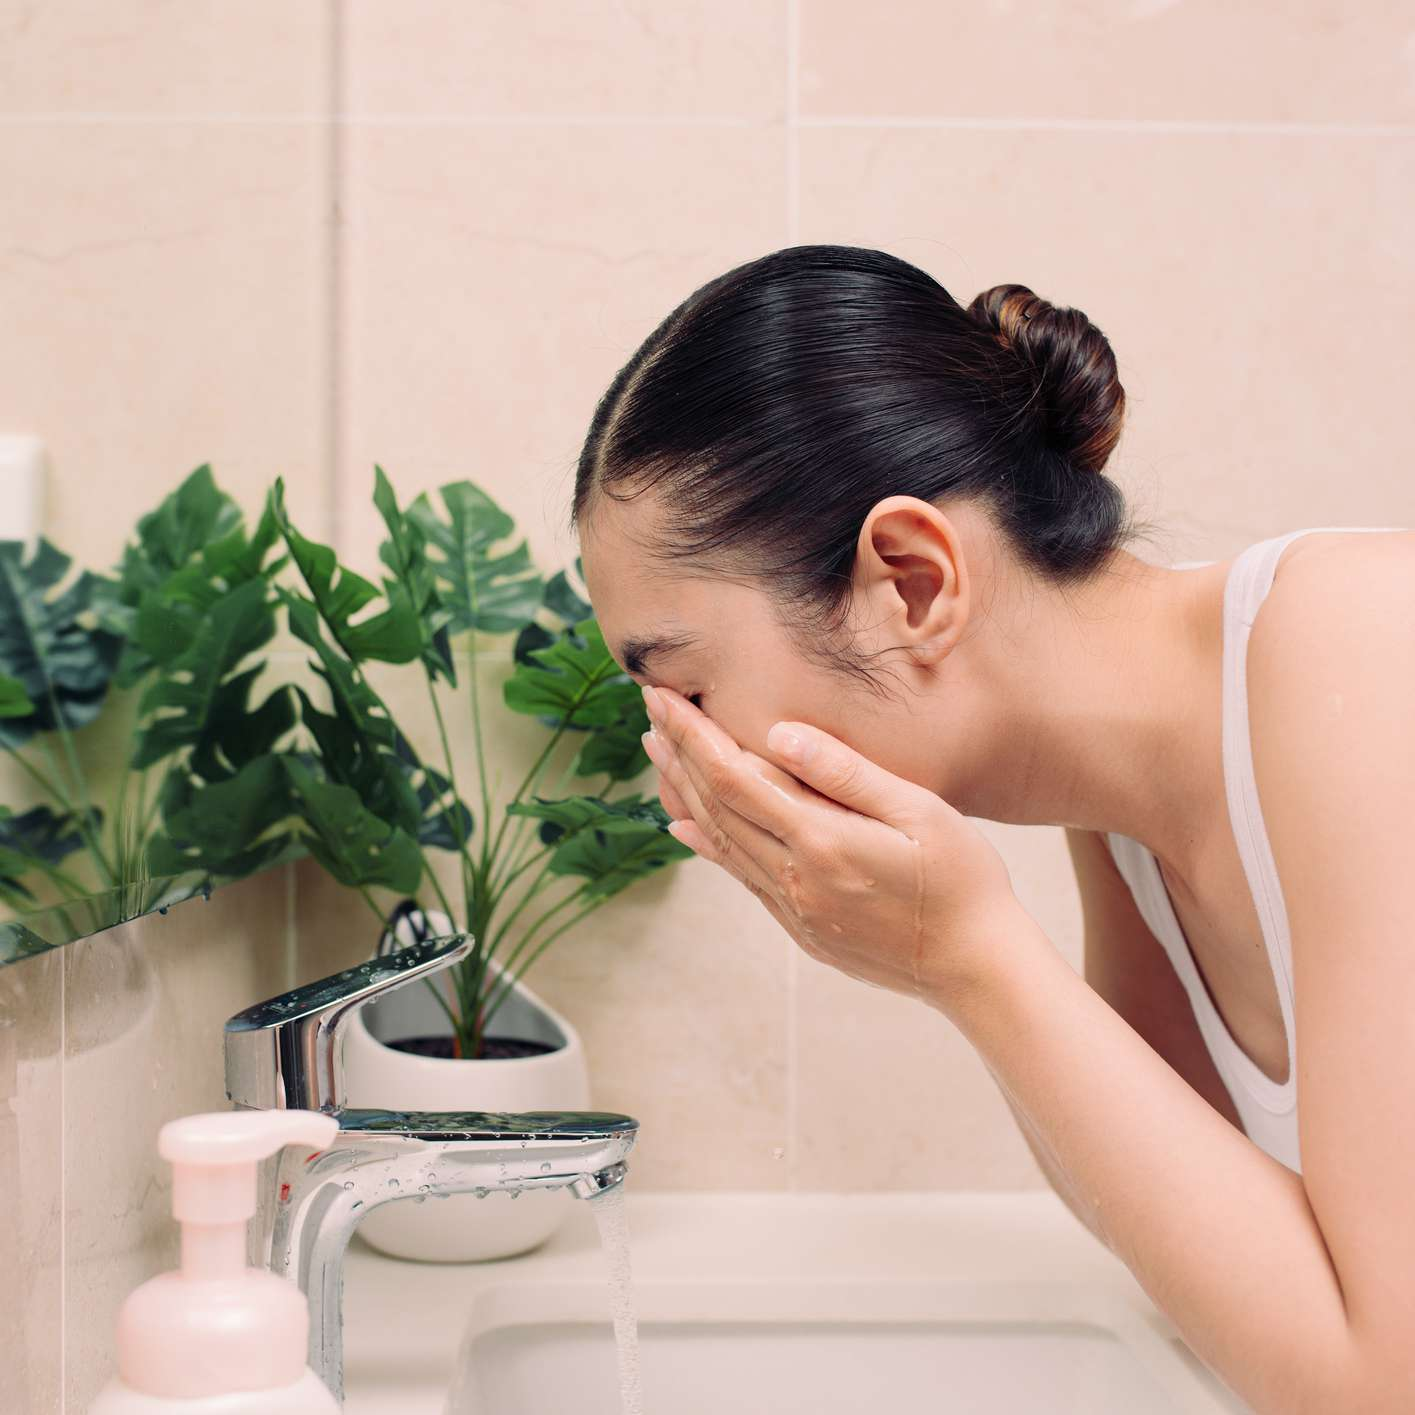 Woman washing her face and neck in the mirror